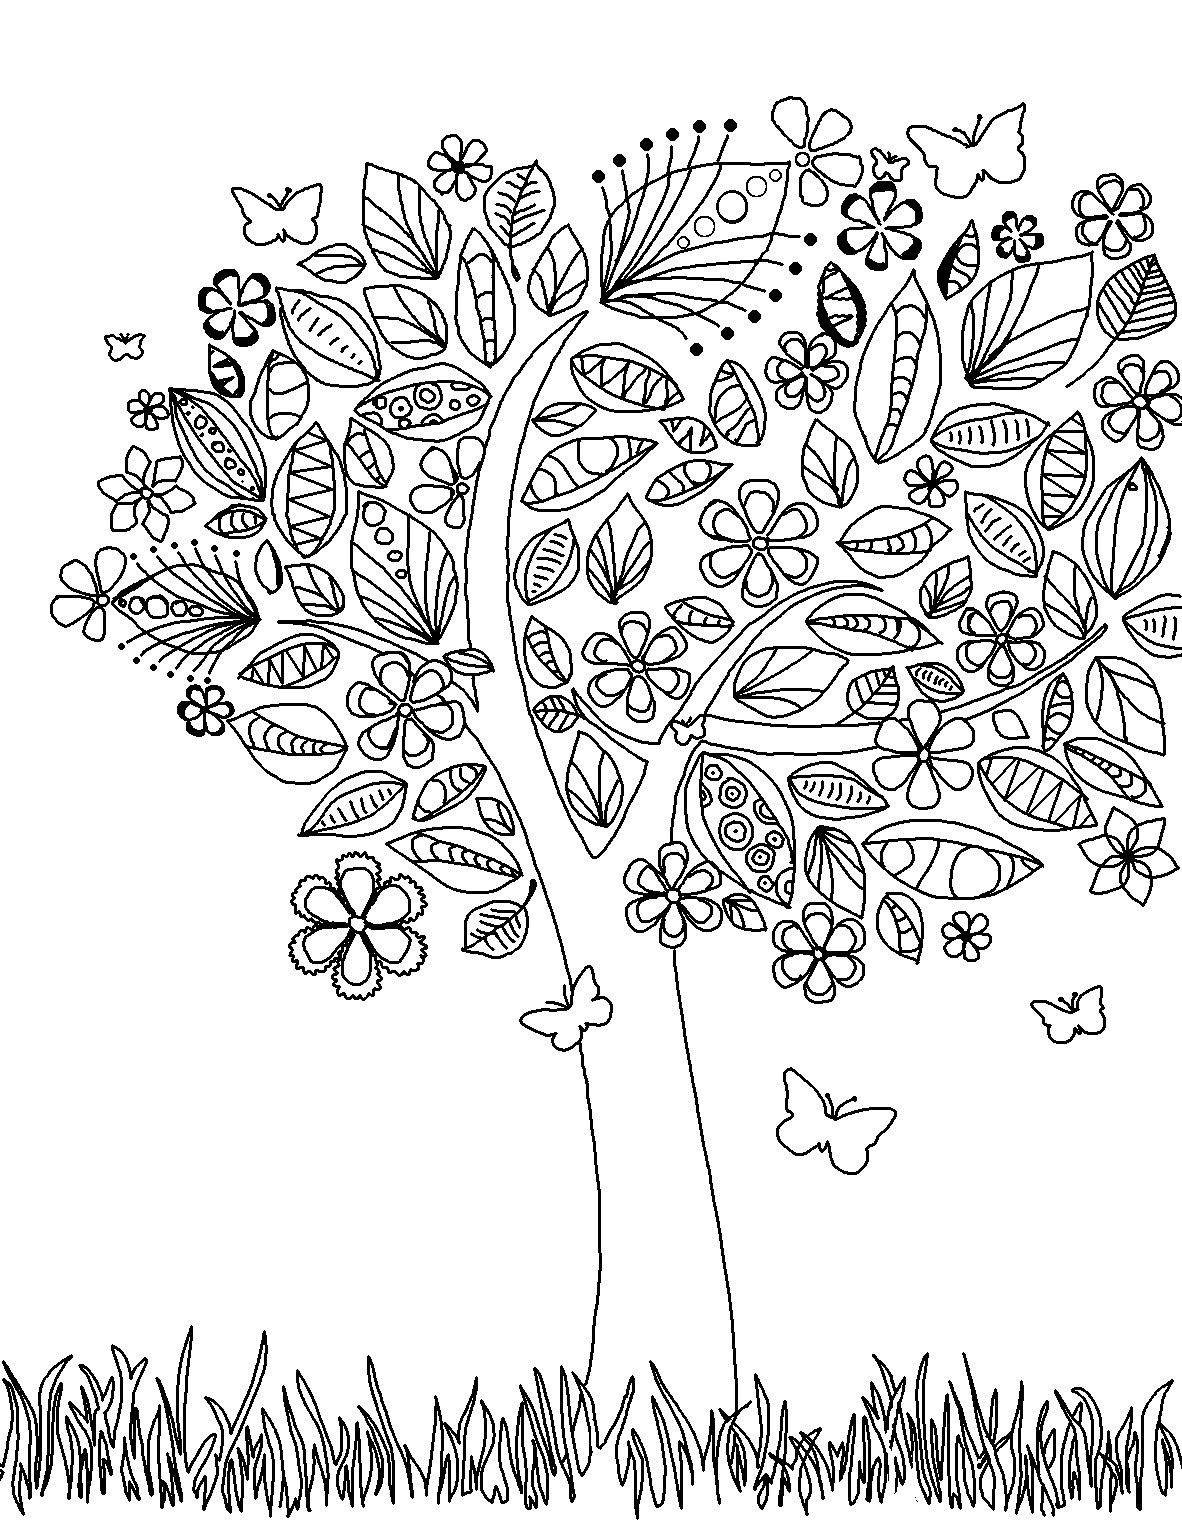 coloring page world tree coloring page with flowers and